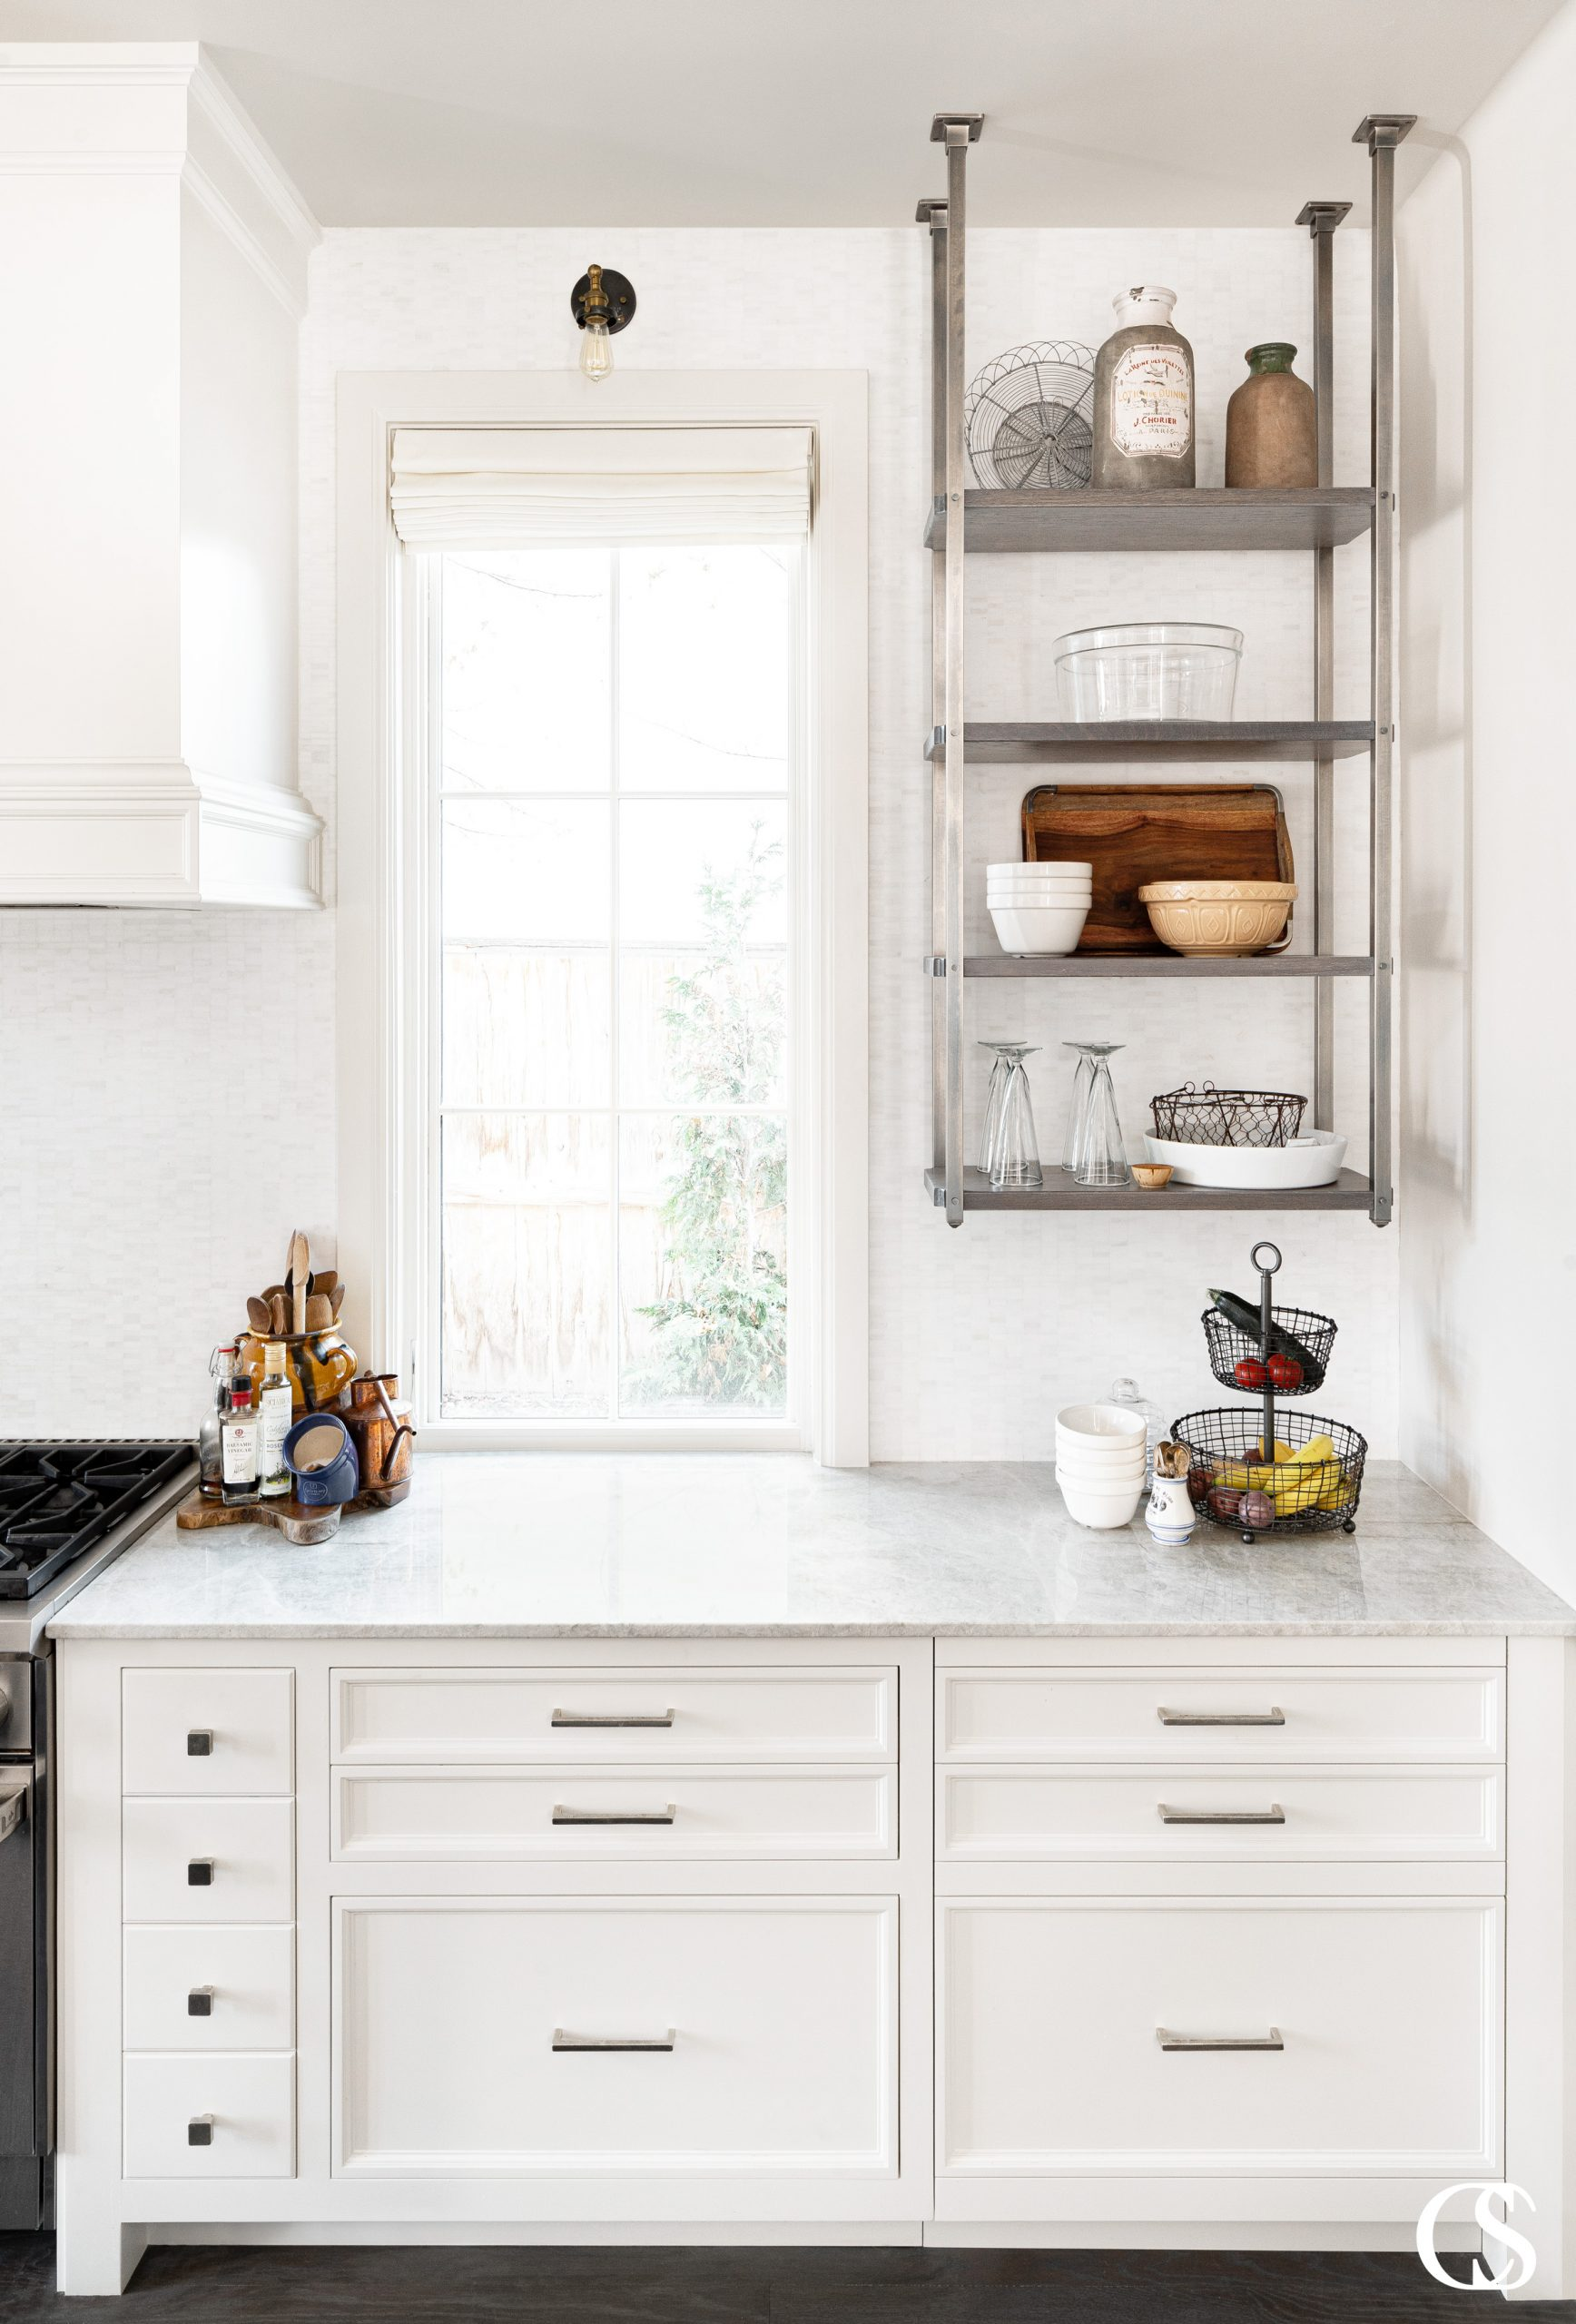 Custom kitchen cabinets design includes things like open industrial shelving and a range hood made to perfectly match the cabinets.